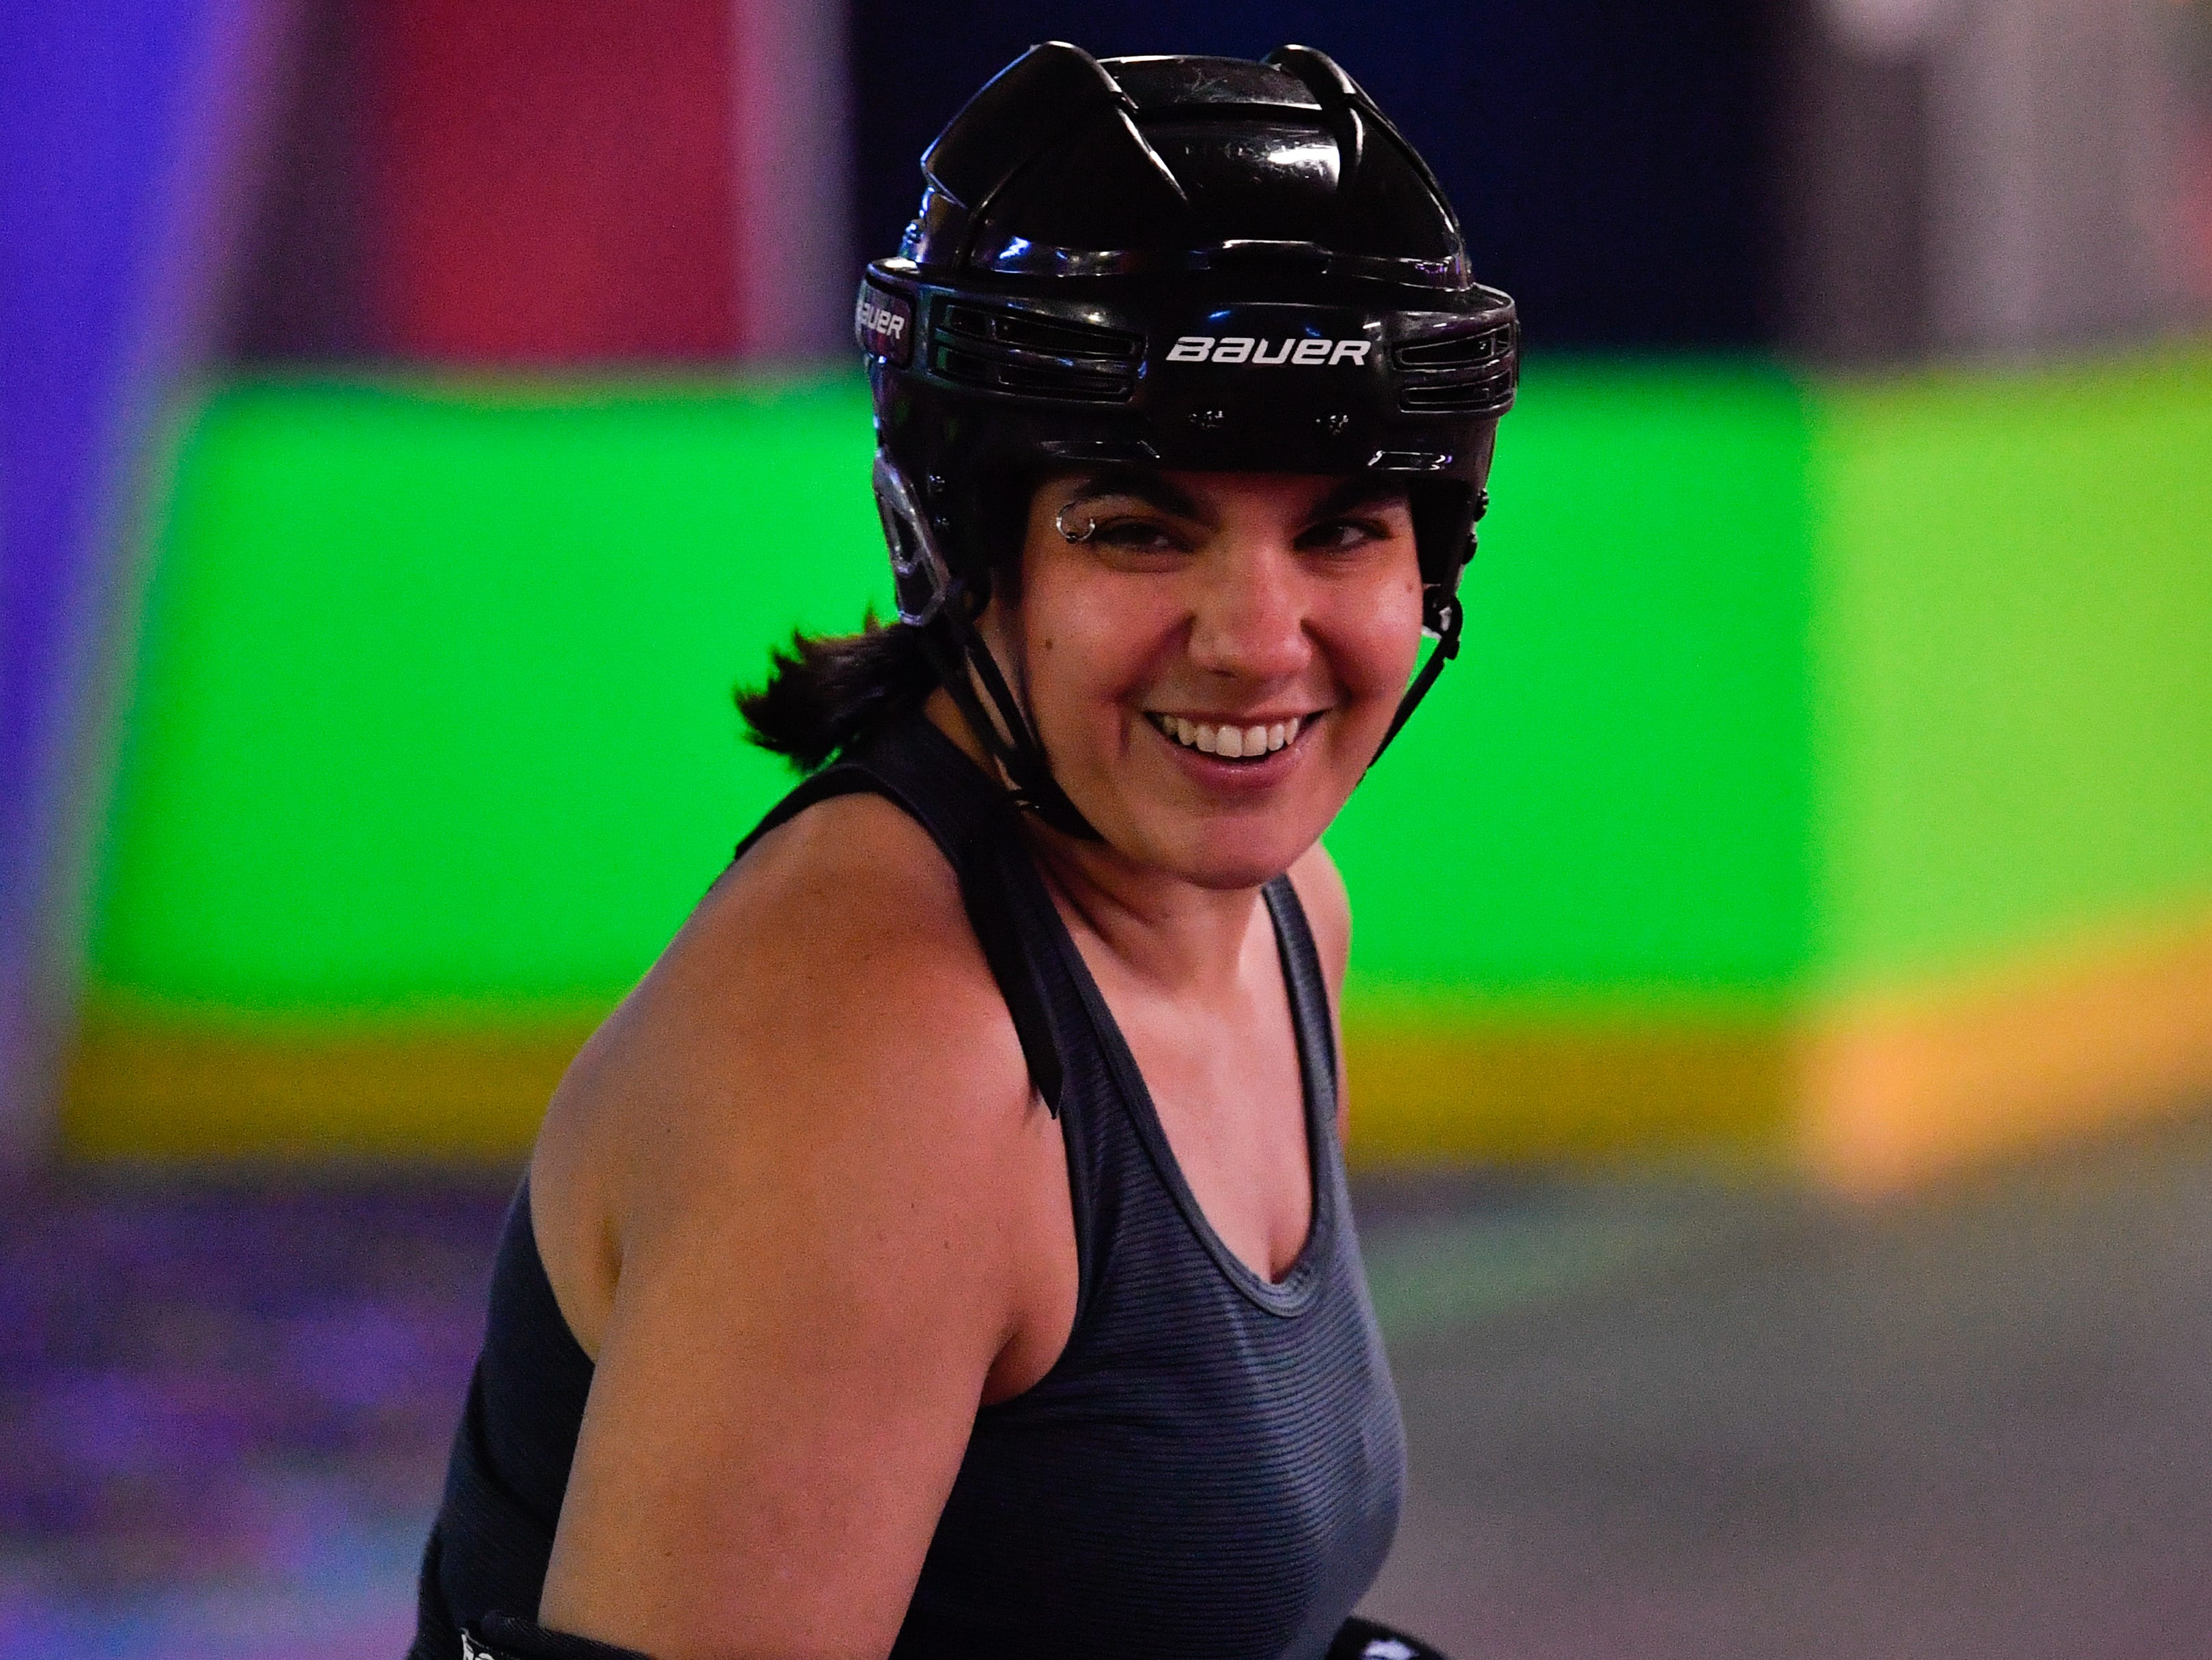 Rachel Shearer warms up during the York City Derby Dames practice at Roll 'R' Way.